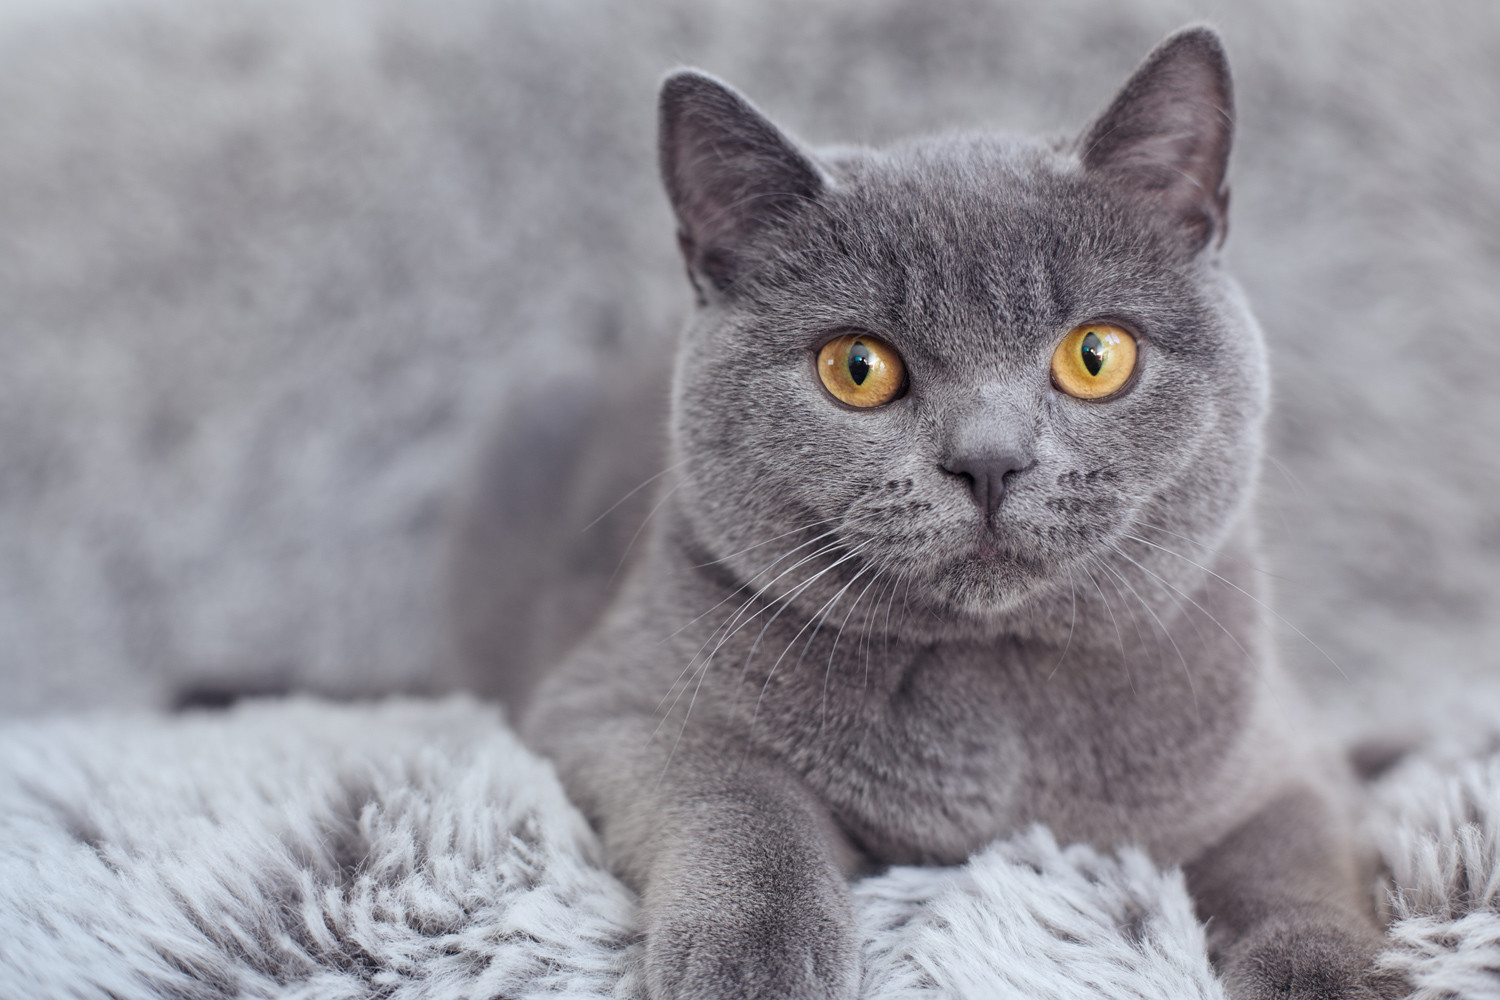 British Shorthair cats are second most popular.